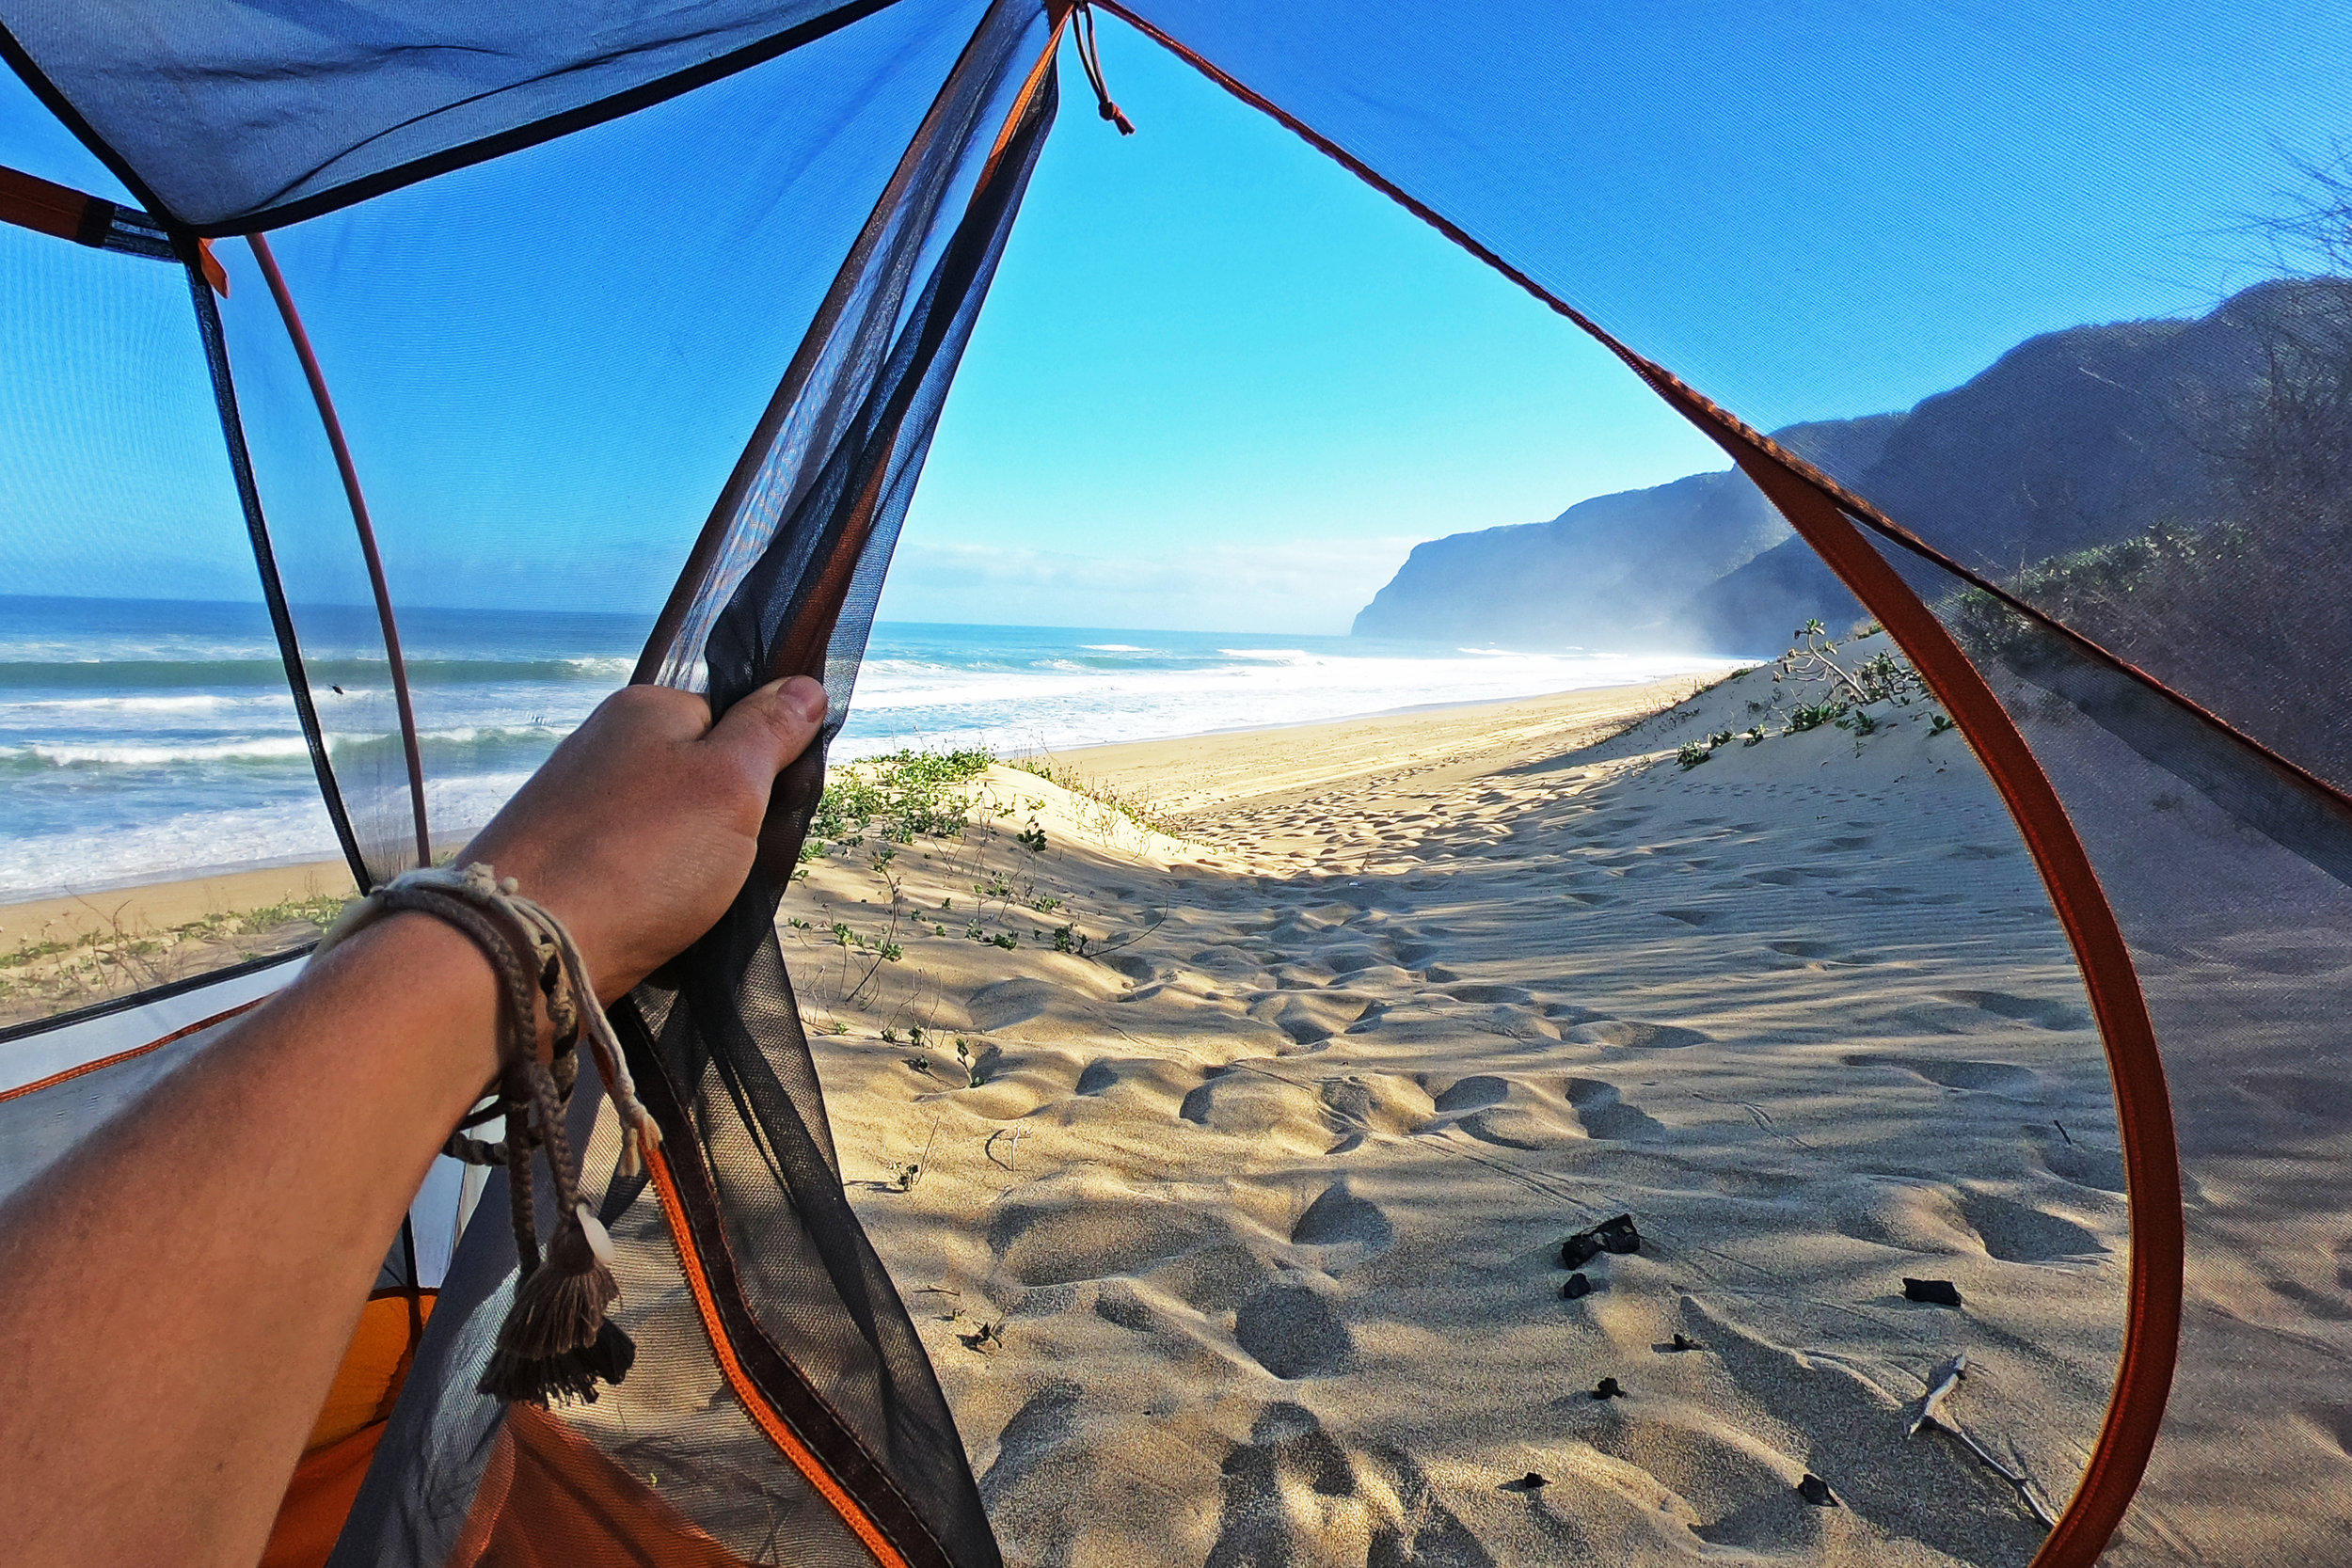 Waking up to stunning views at Polihale State Park.